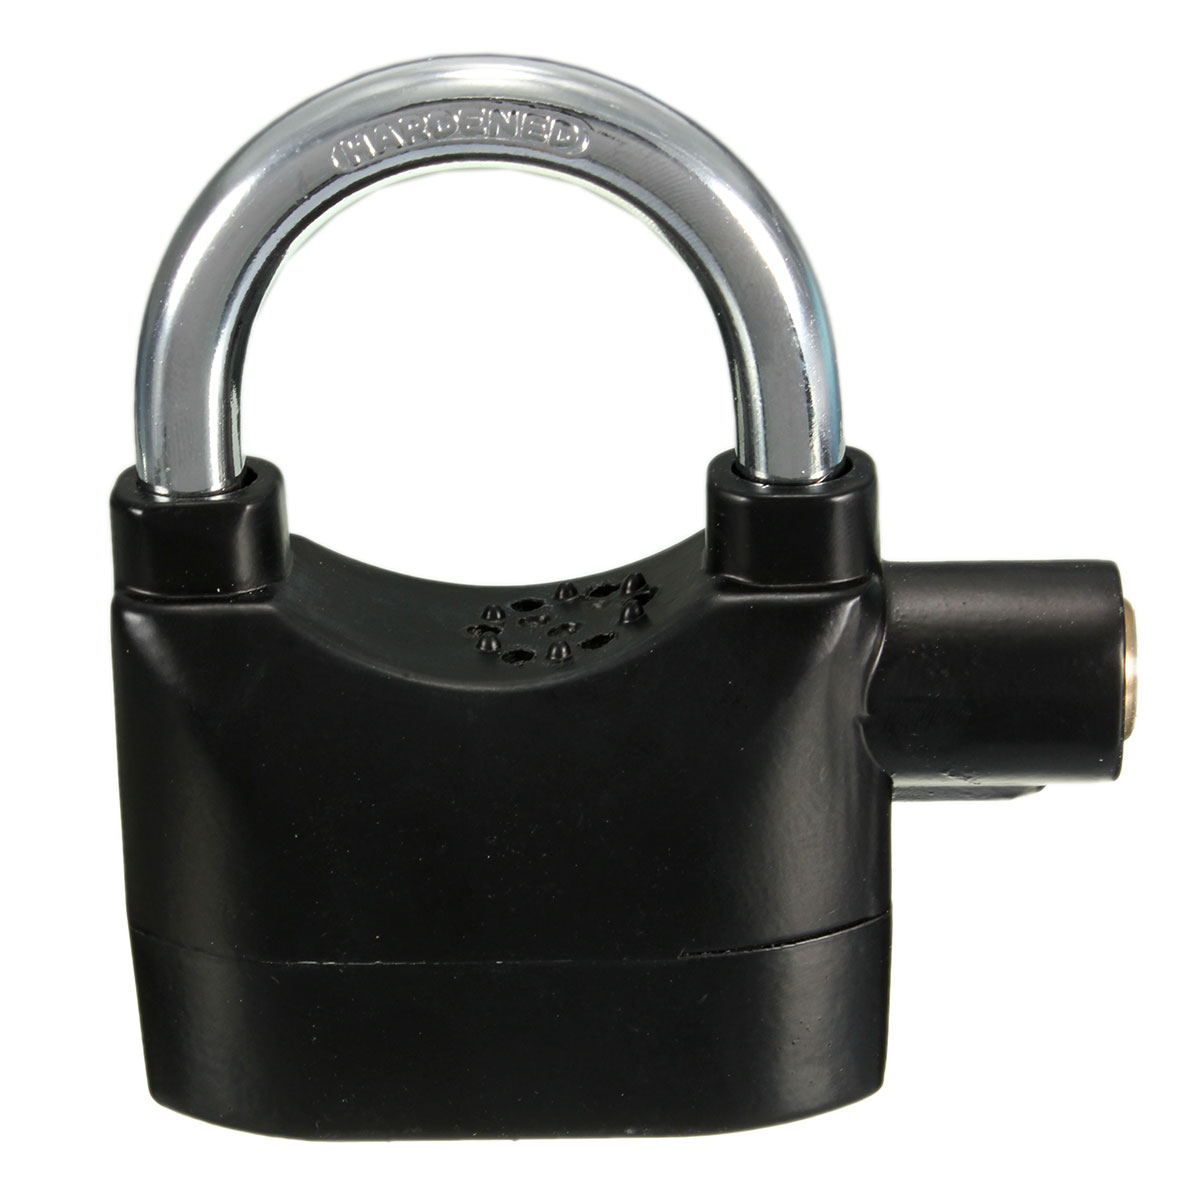 Alarm Padlock Lock Anti Theft + 3 Keys 110db For Bike. Unique Door Handles. Doggy Door Ideas. Parts For Liftmaster Garage Door Opener. Nautical Door Mats Outdoor. Door Threshold Seals. Garage Door Repair Northern Kentucky. Garage Door Installation Pittsburgh. Garage Door Color